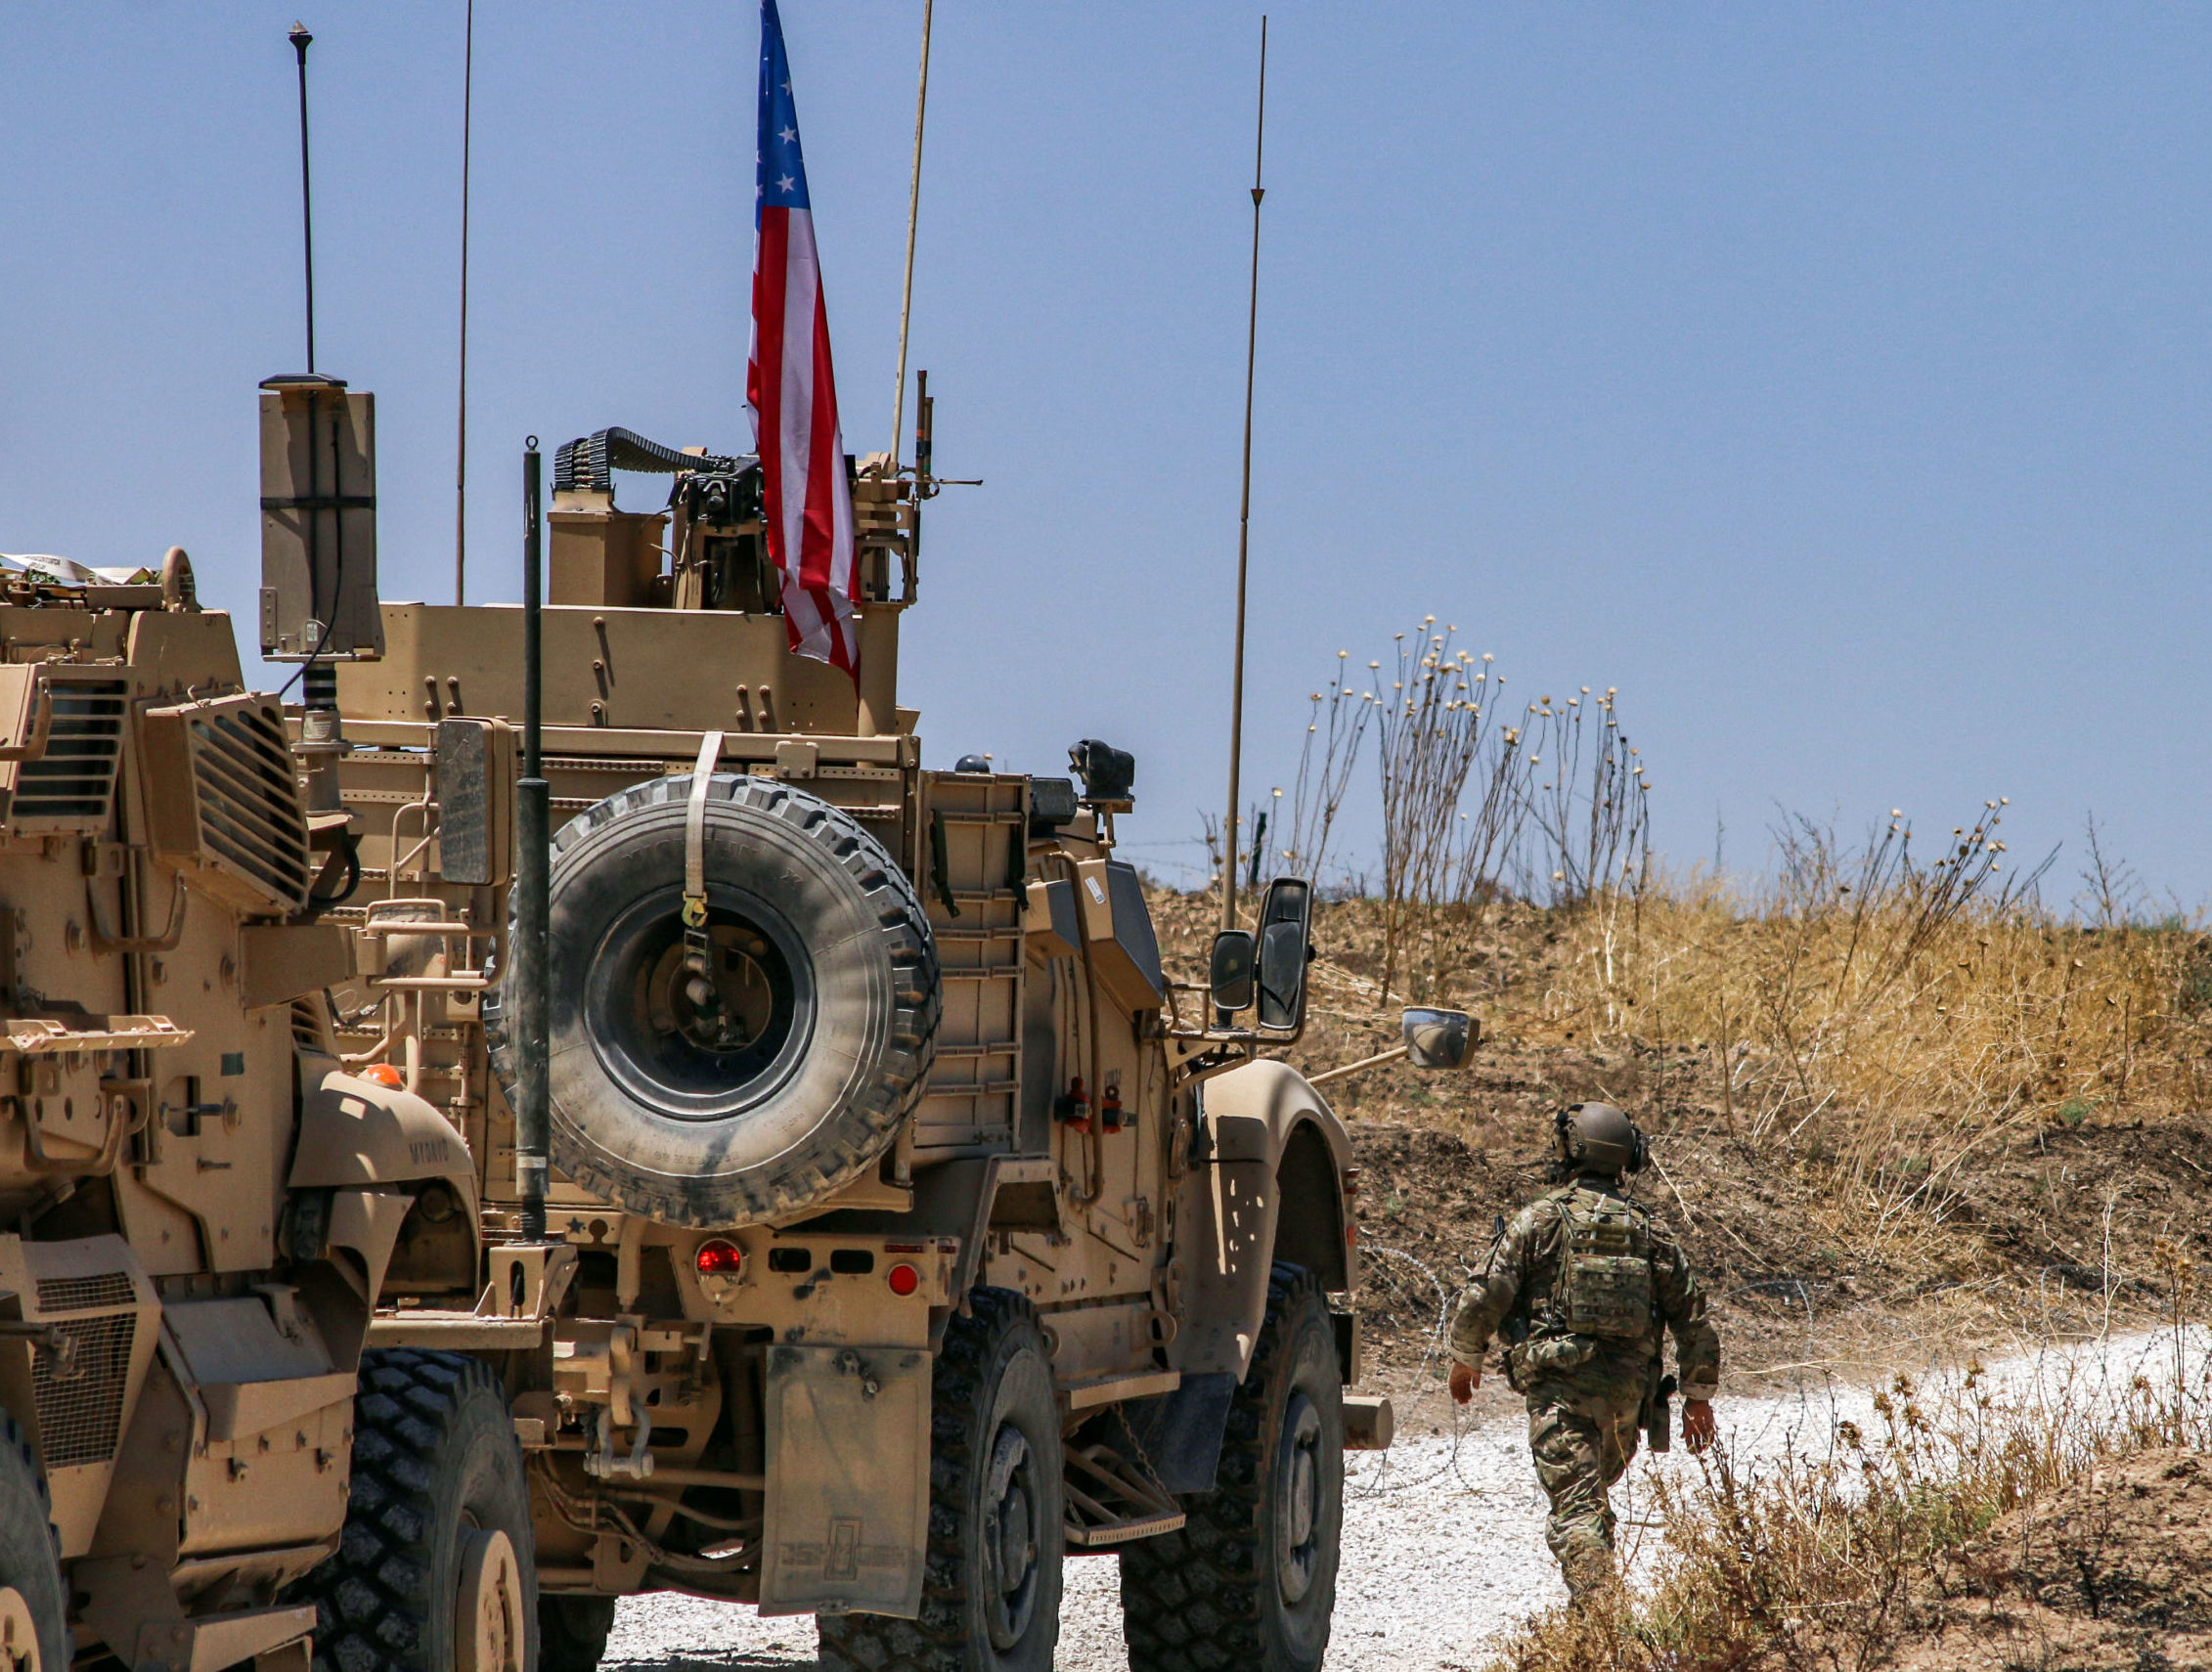 Armoured vehicles of the US-led coalition patrol the city of Ras al-Ain in Syria's Hasakeh province on July 28, 2019.